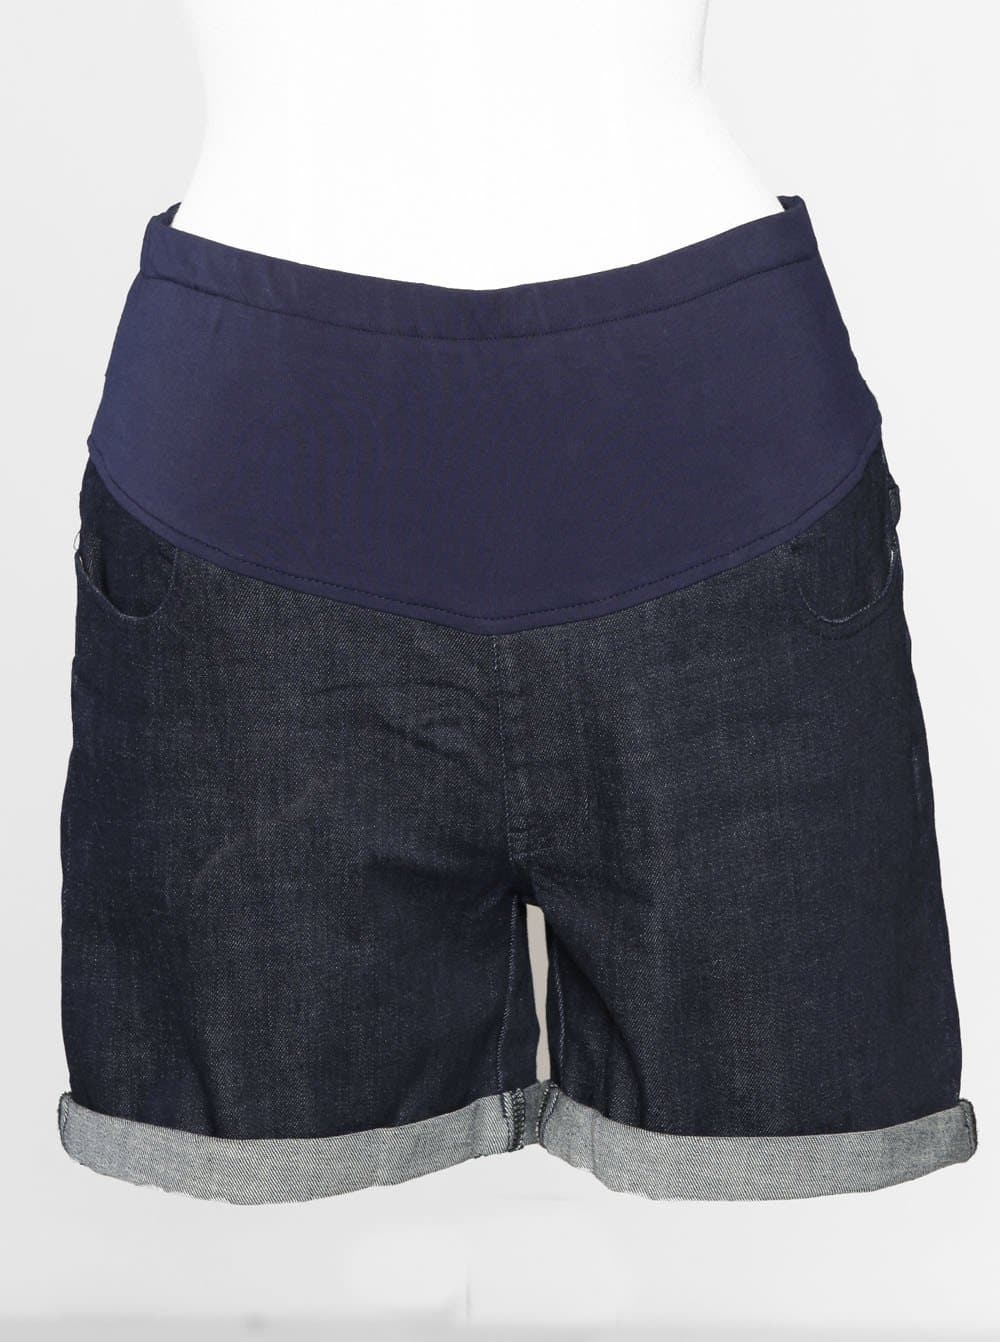 Angel Maternity Summer Denim Short - Dark Navy